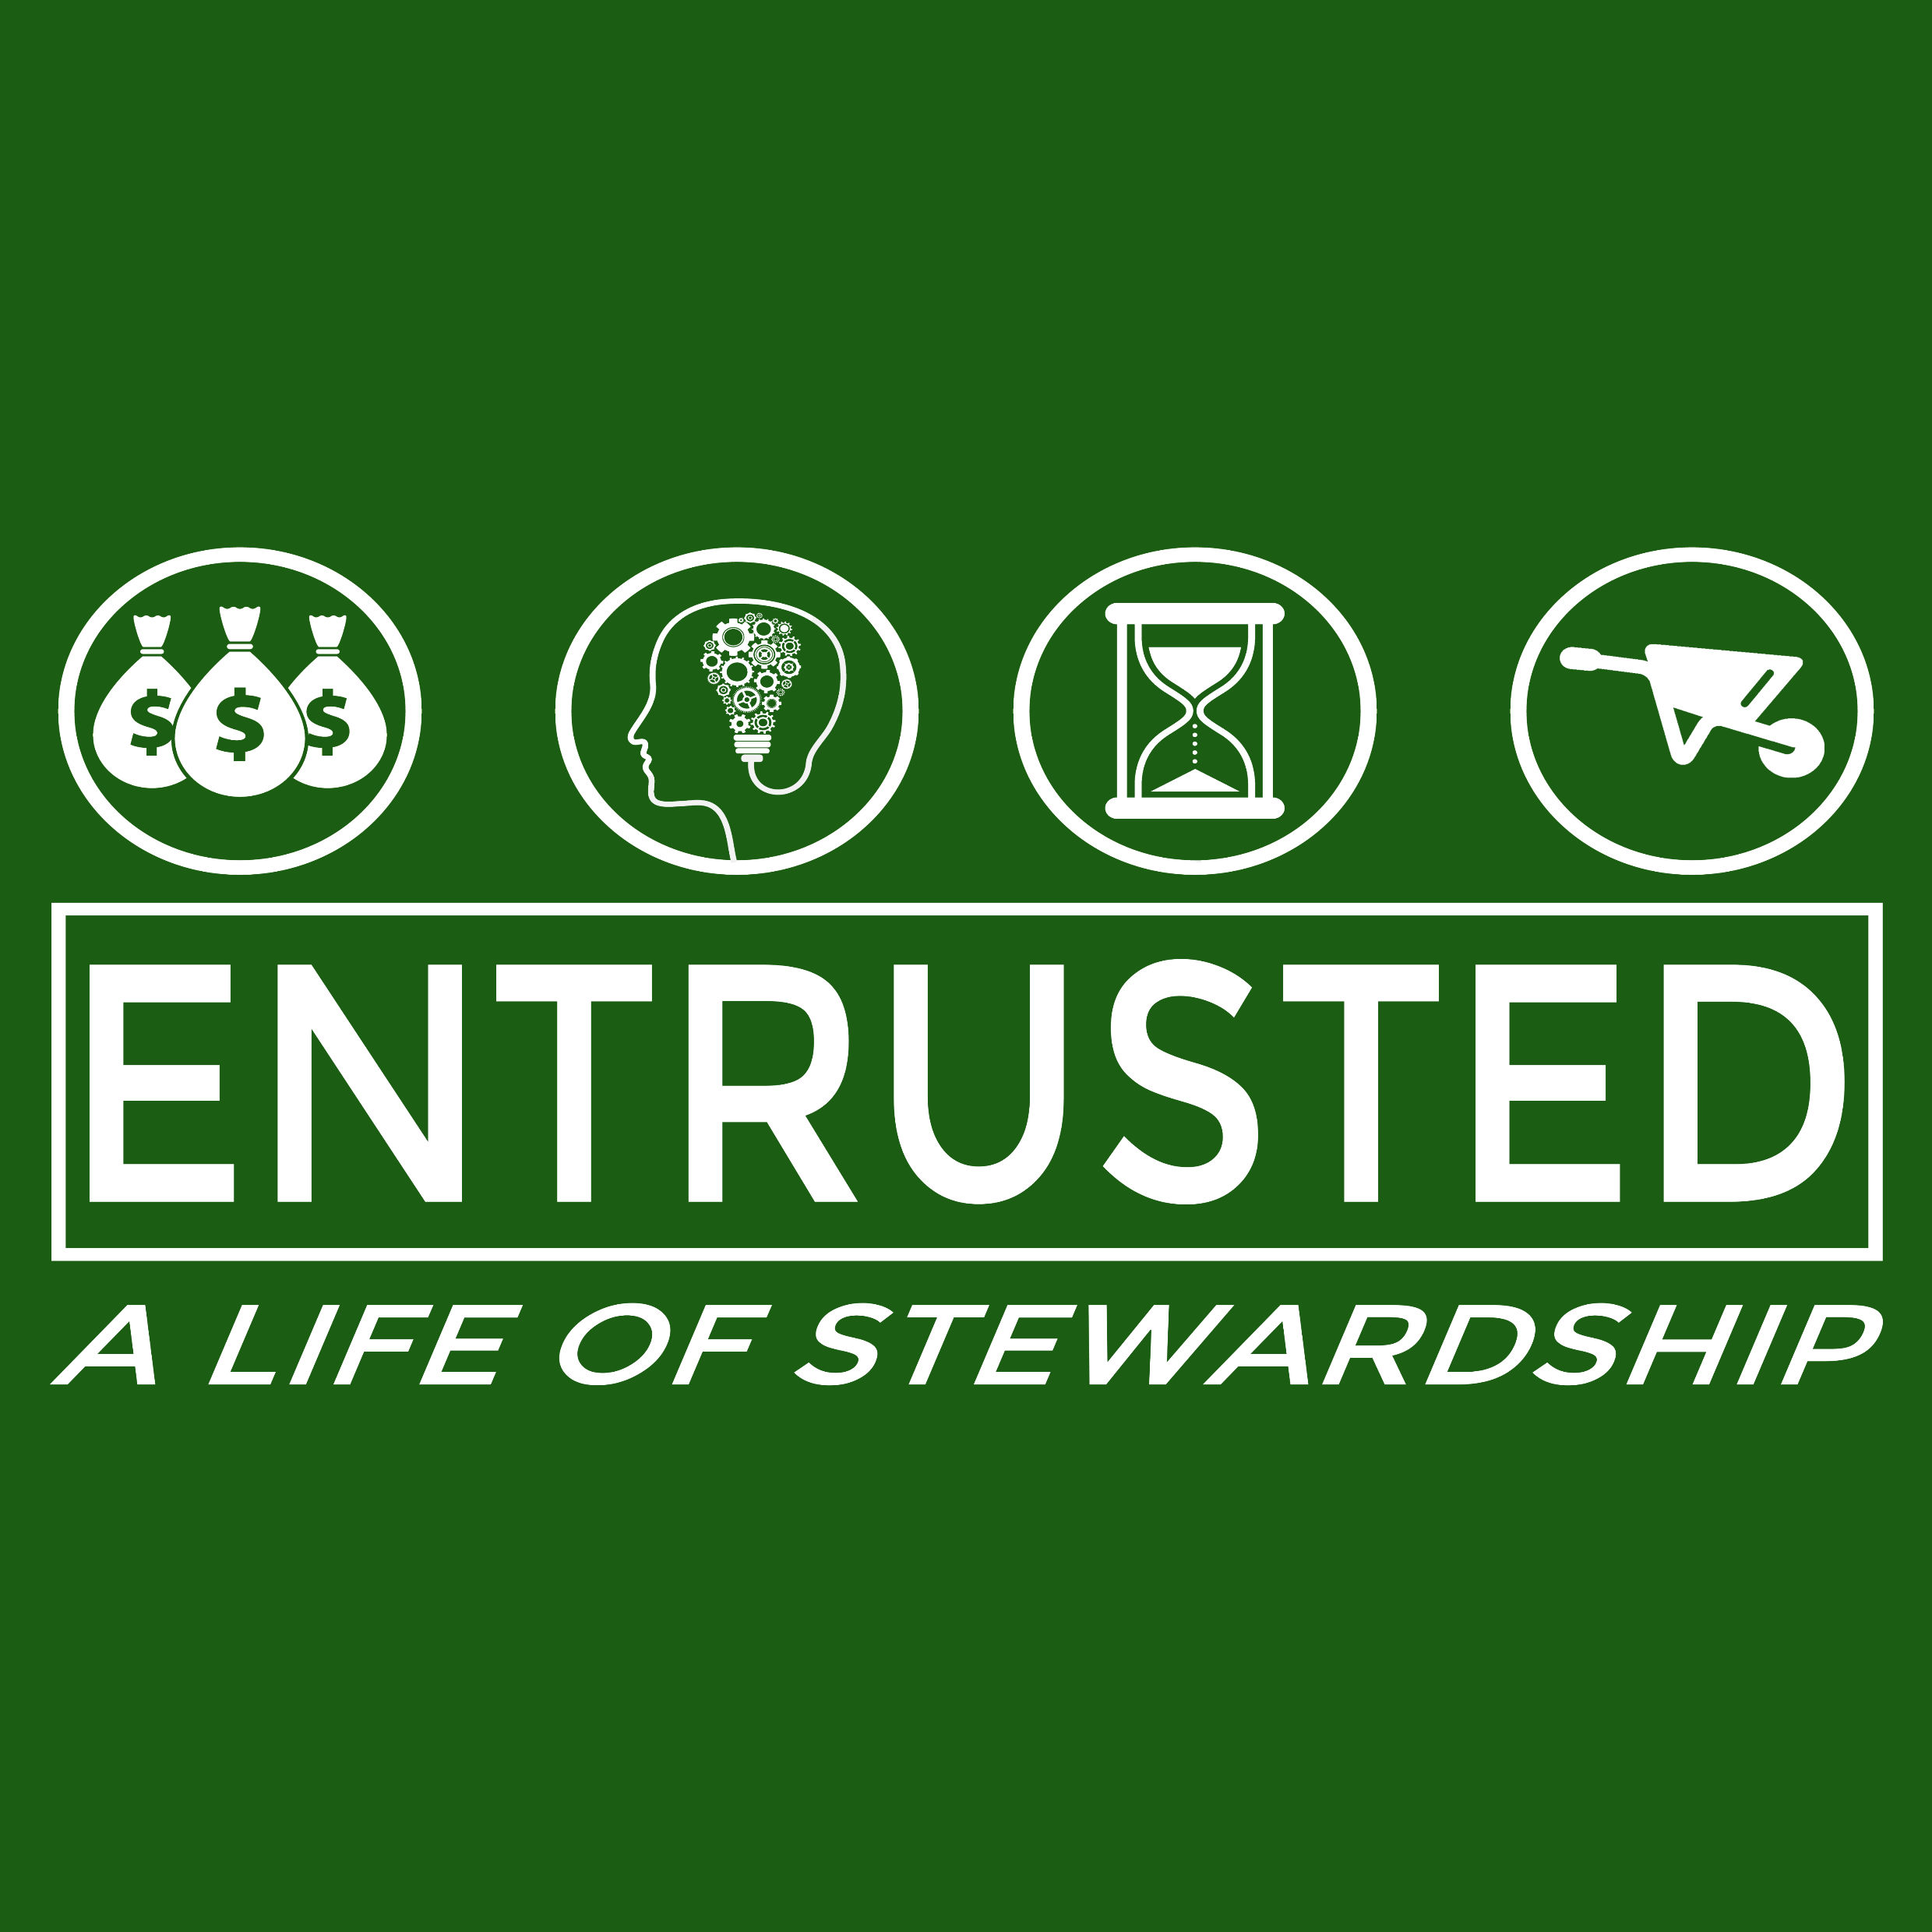 Entrusted: Living A Life Of Stewardship